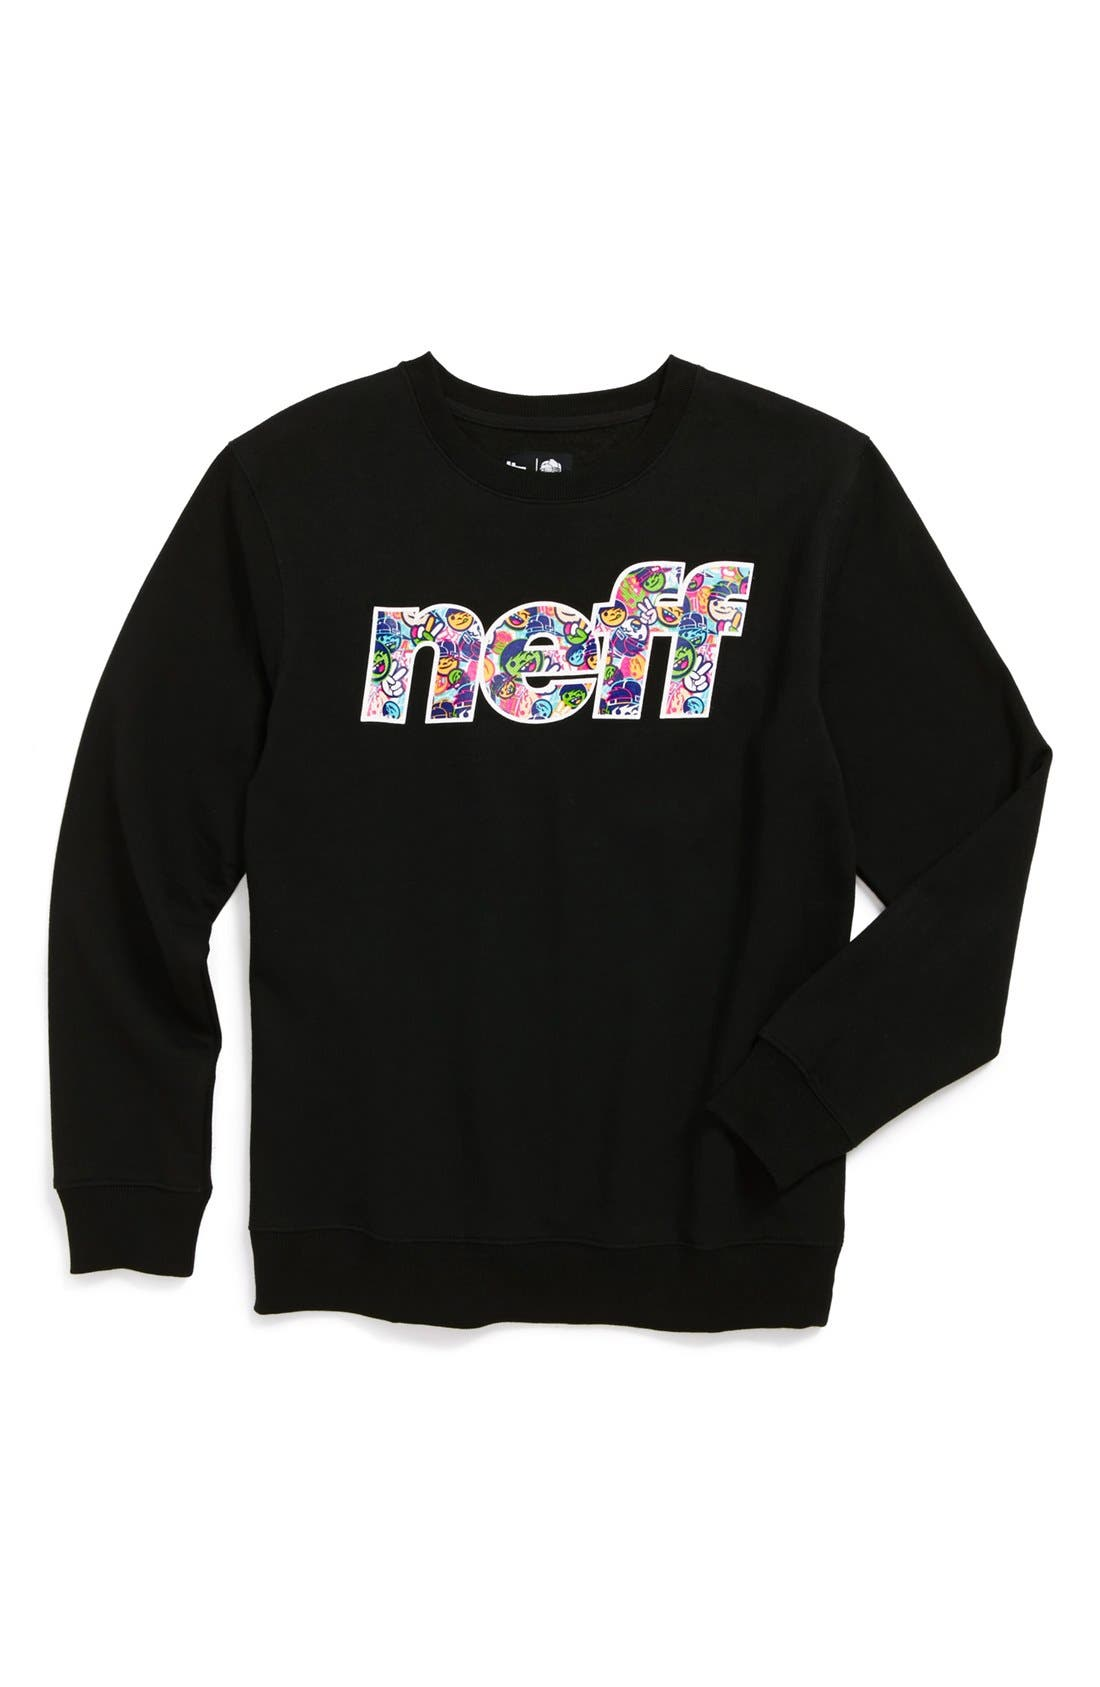 Alternate Image 1 Selected - Neff 'Fun Filled' Crewneck Fleece Shirt (Big Boys)